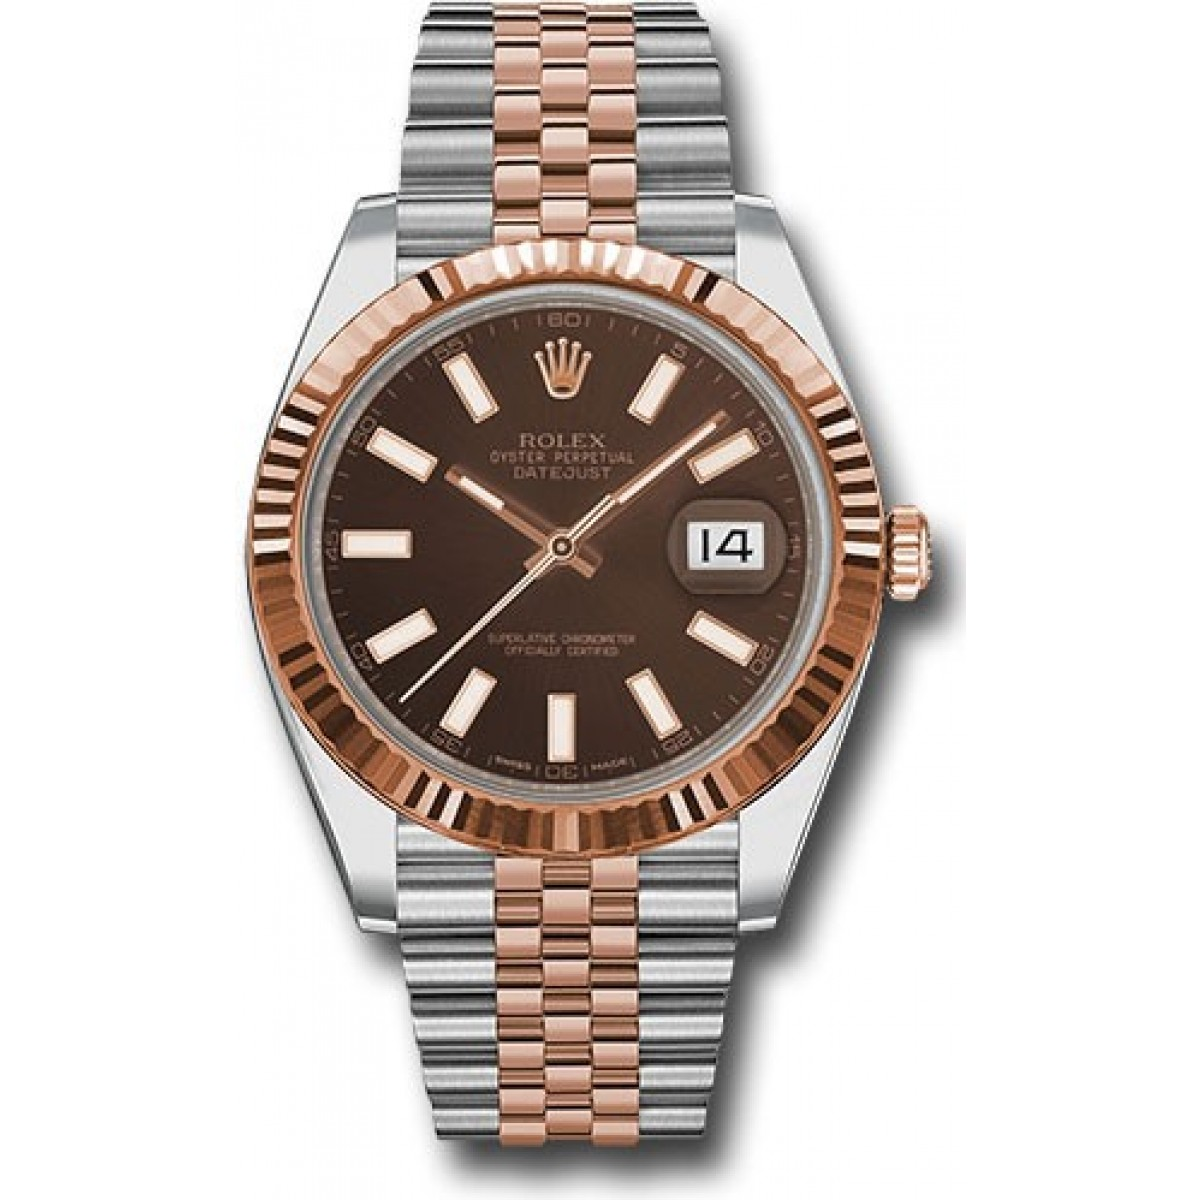 Rolex Datejust 41mm Stainless Steel and Pink Gold 126331 Jubilee Band  Chocolate Stick Dial